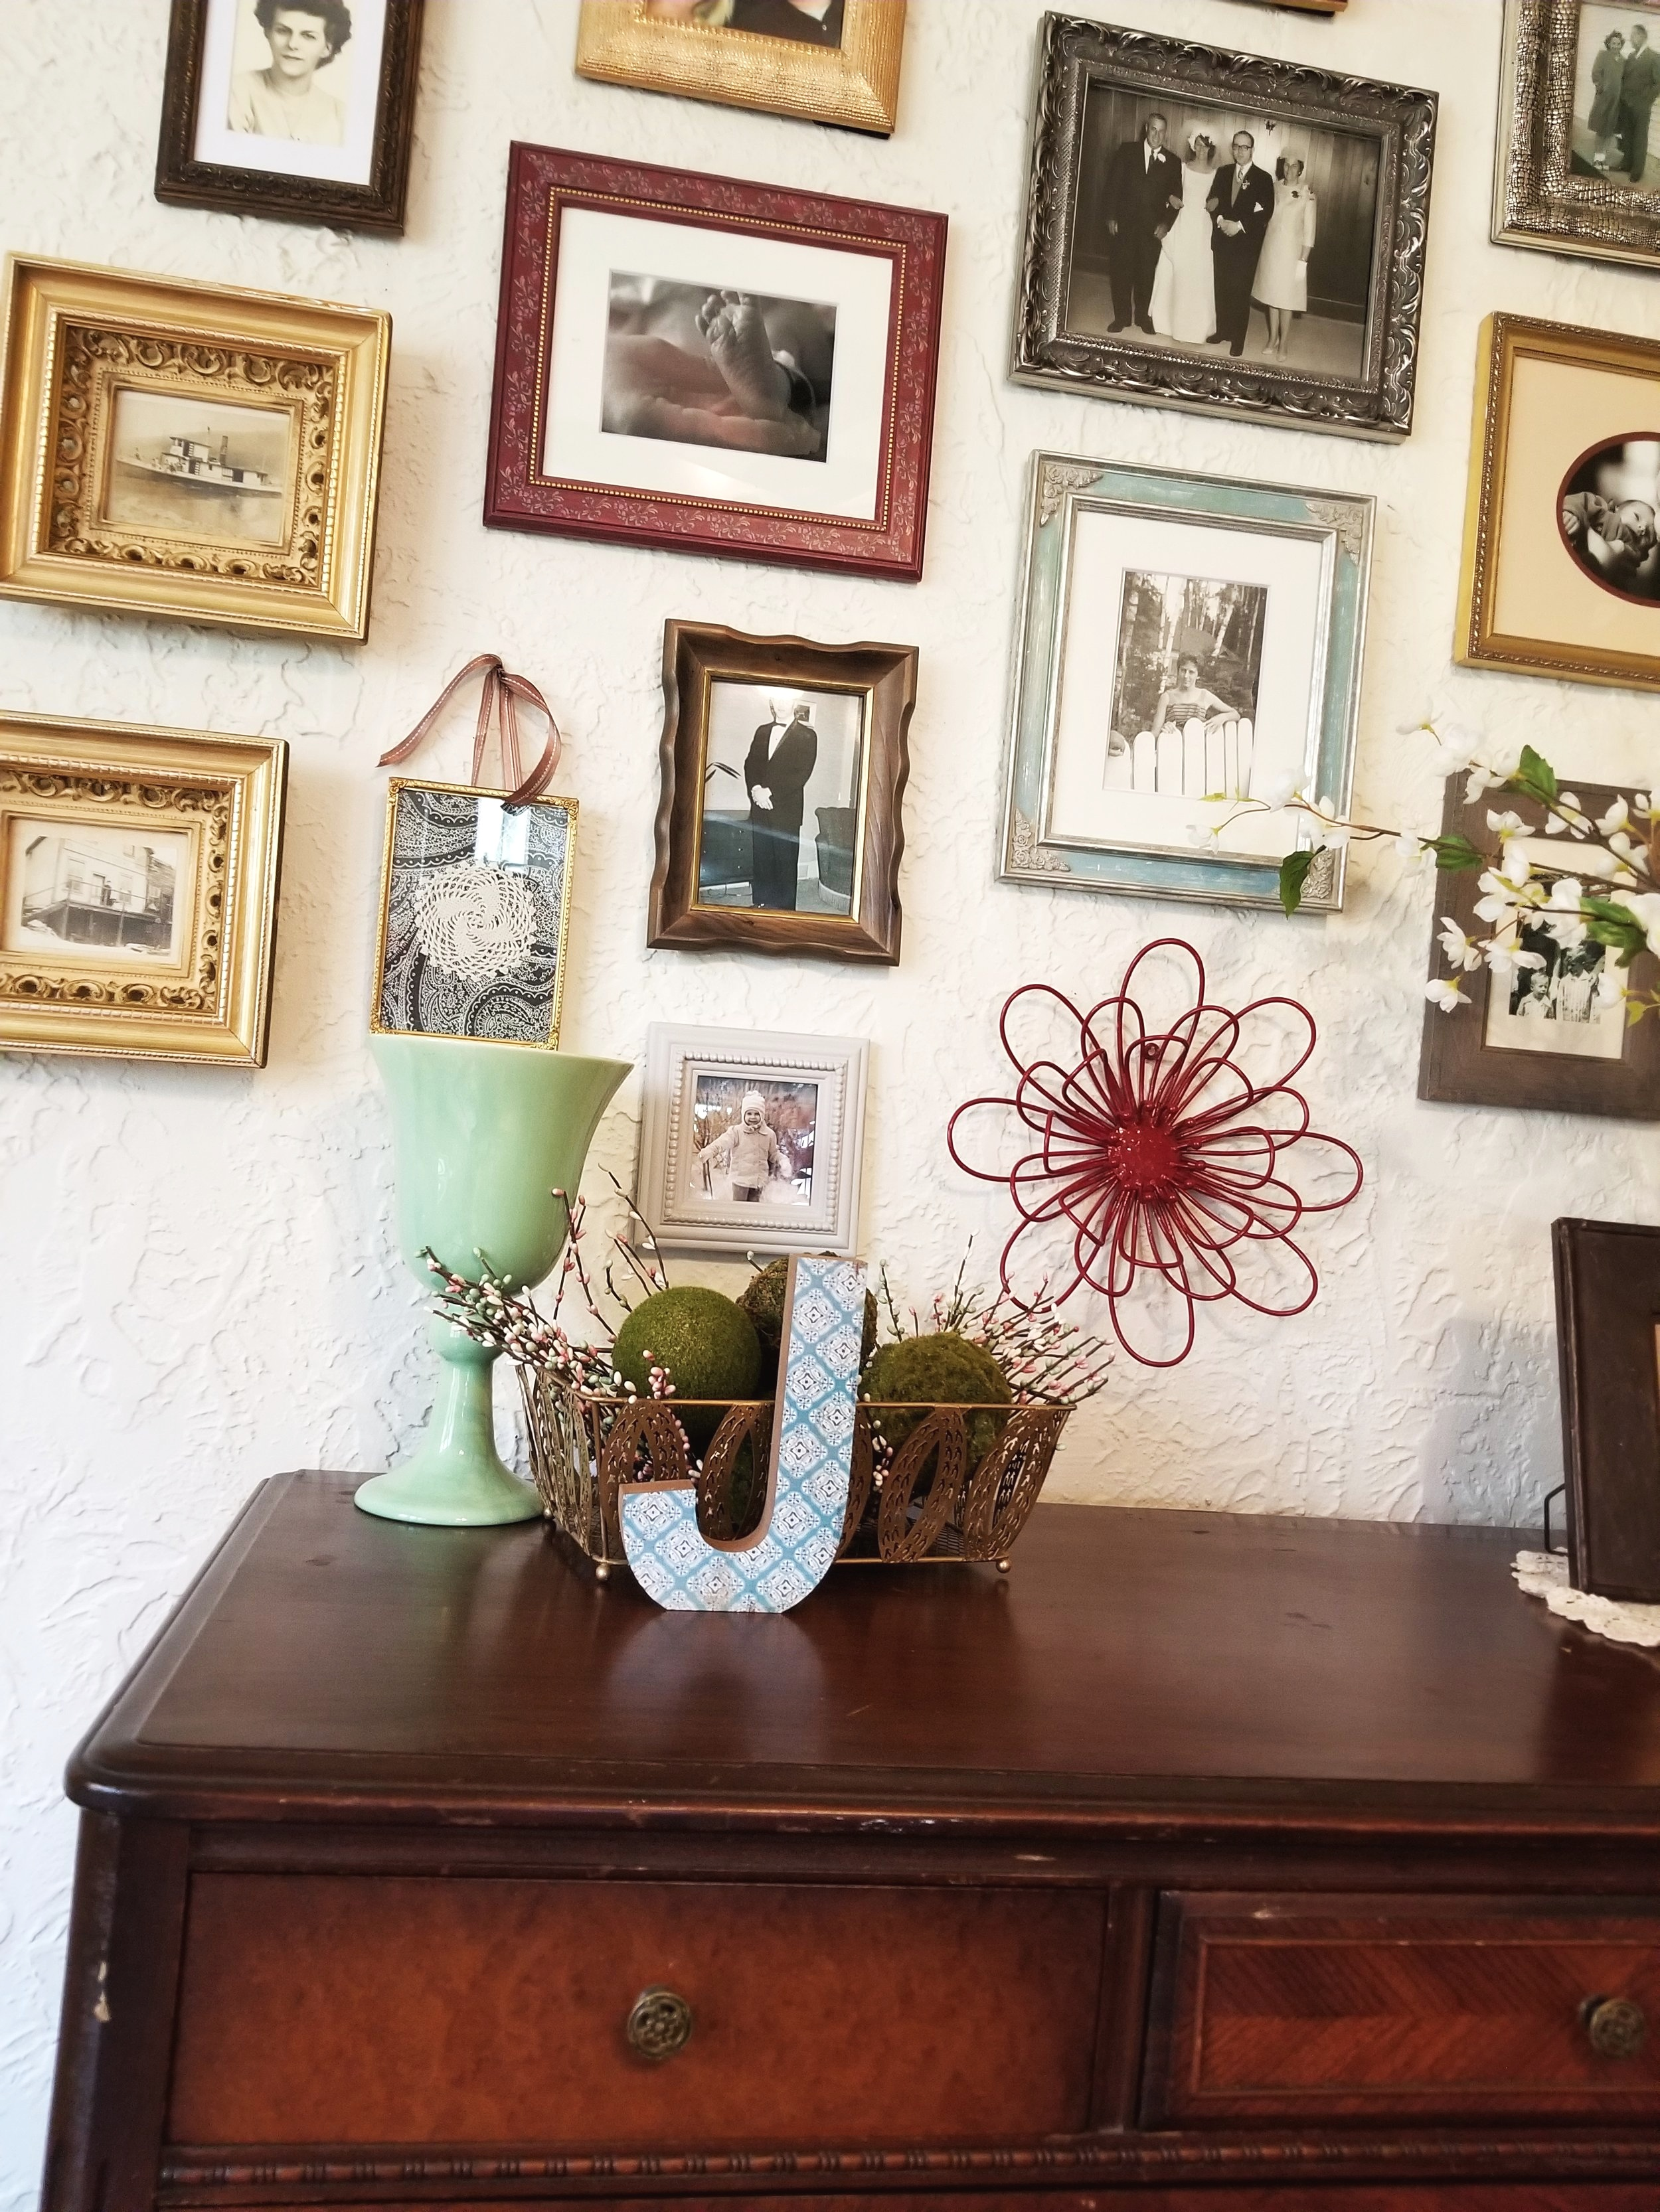 Jen has this great antique buffet just below her gallery. I added a few touches to the buffet surface. It totally to completes the look!